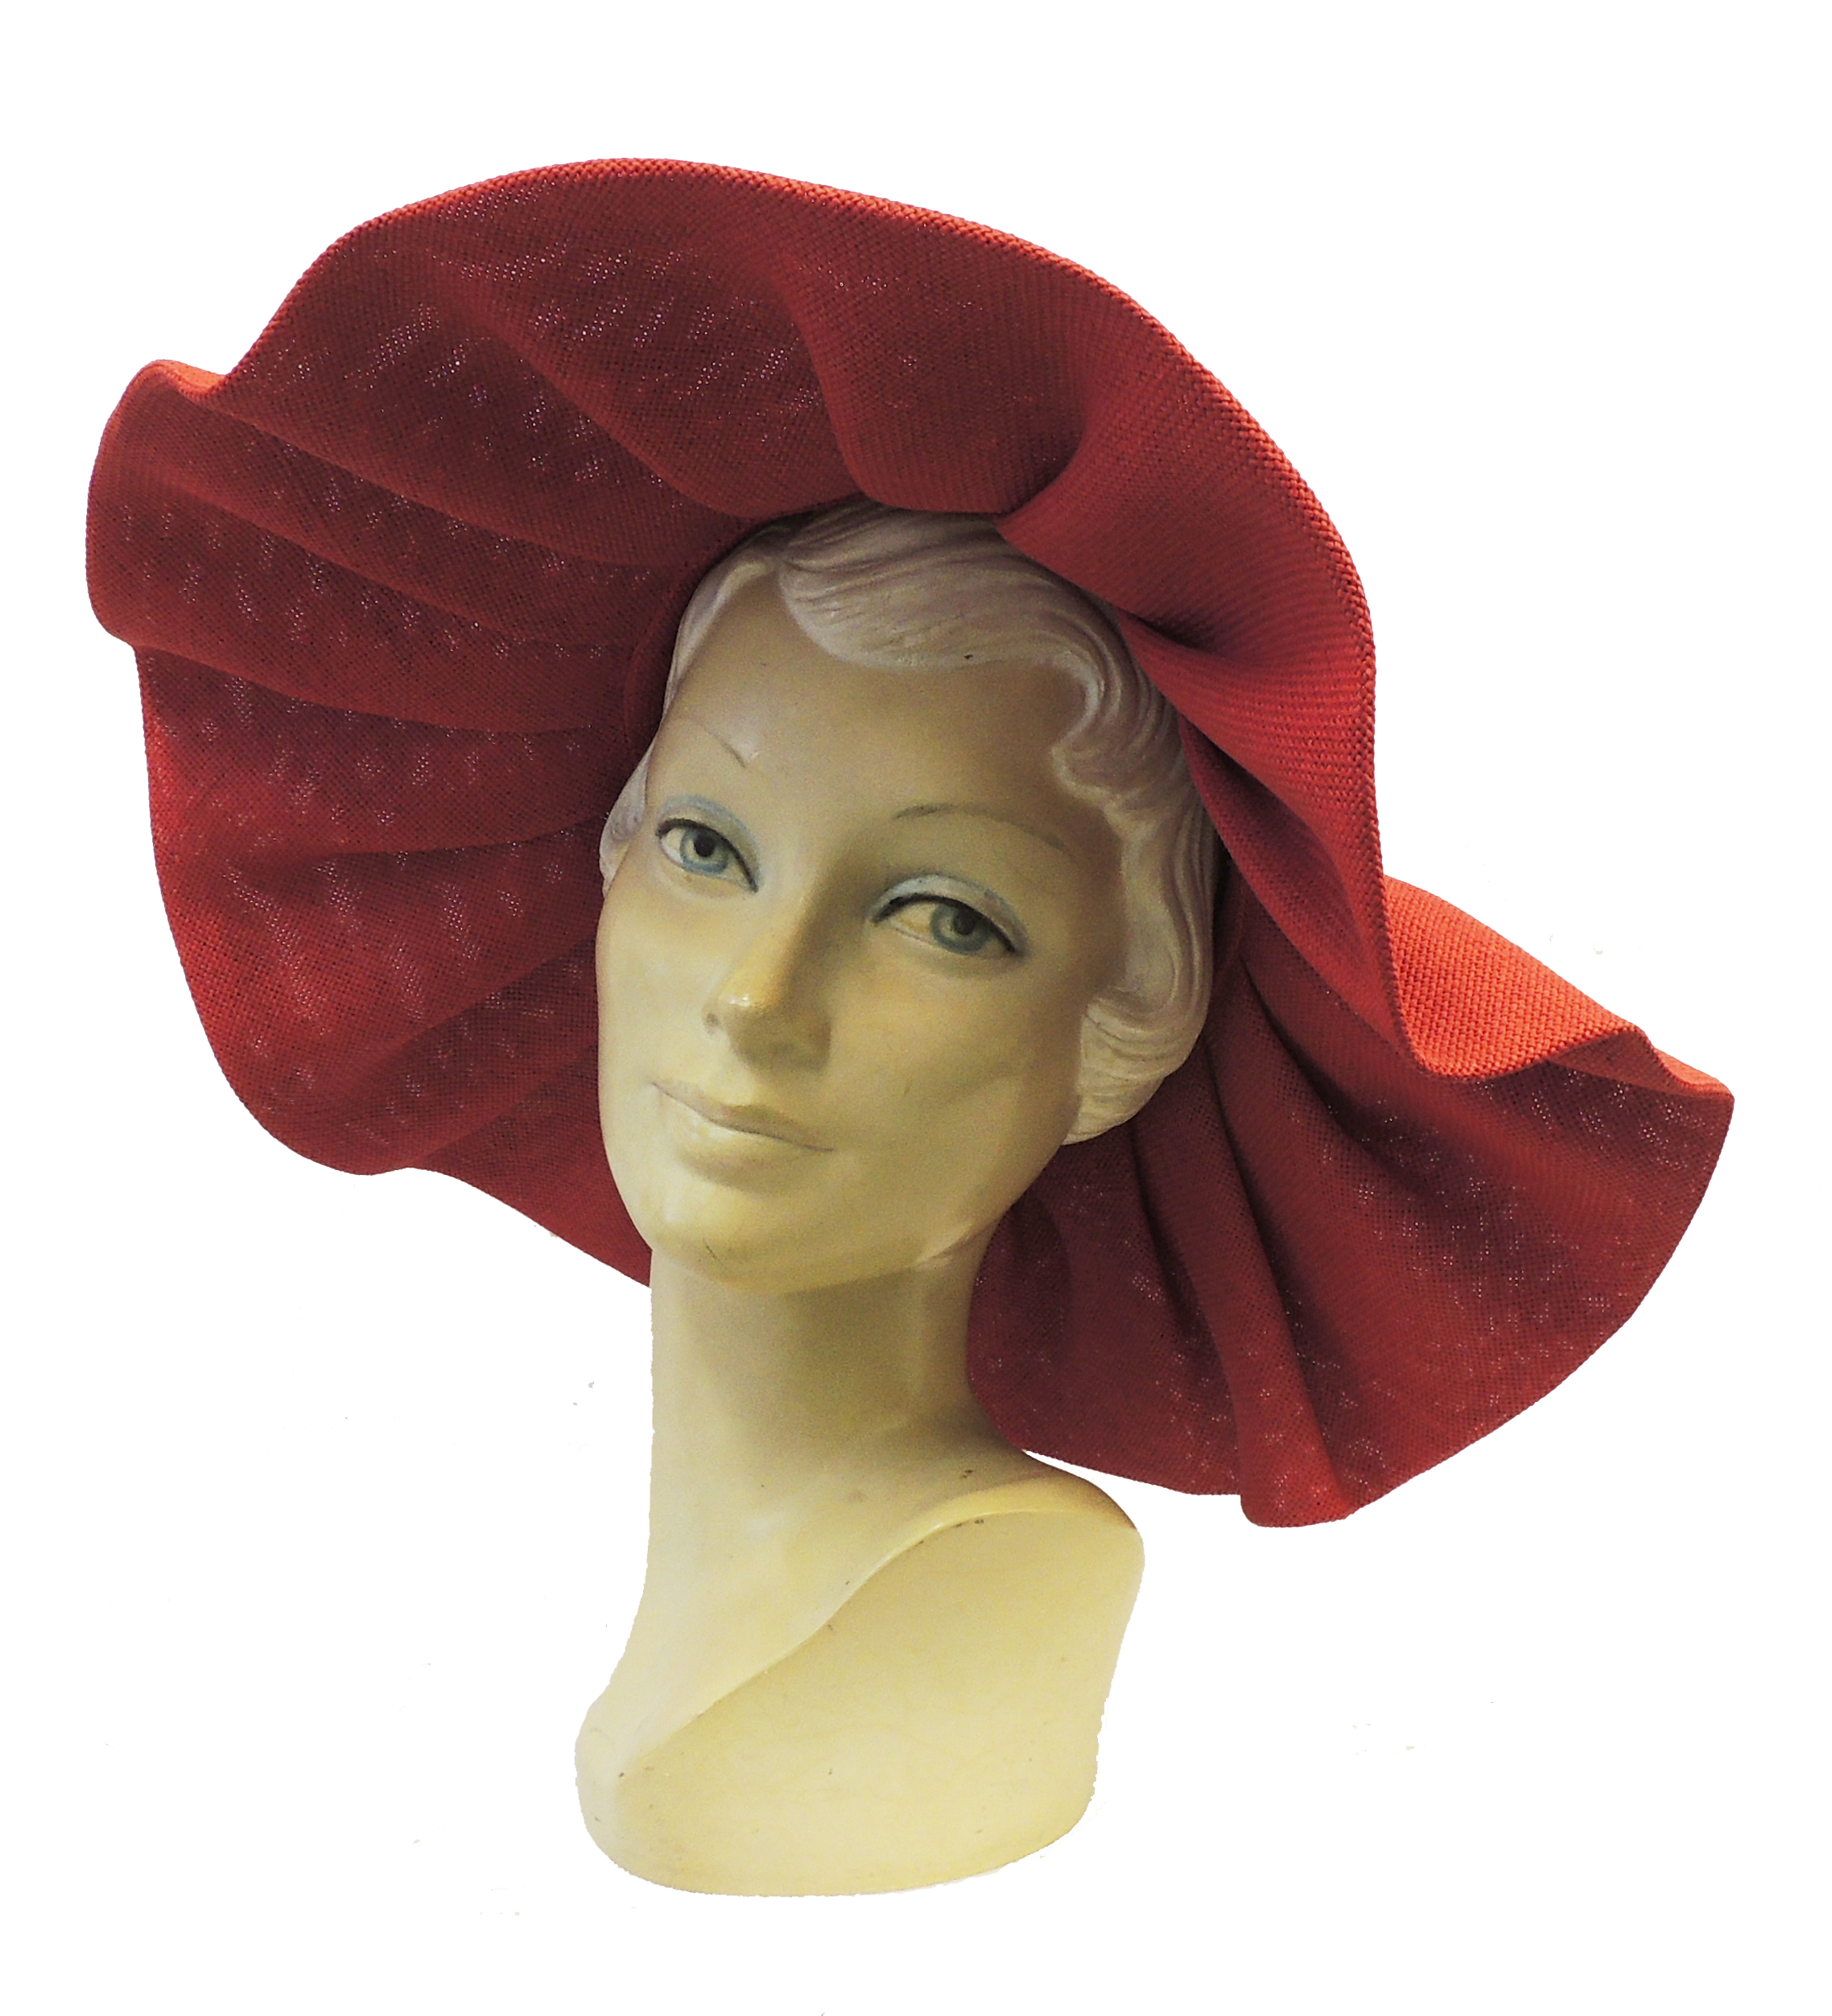 1950 Style Clothing- A Shopping Guide   New Retro Wide Brim Large Raffia Summer Sun Hat 1940s 1950s Hollywood Style $22.99 AT vintagedancer.com